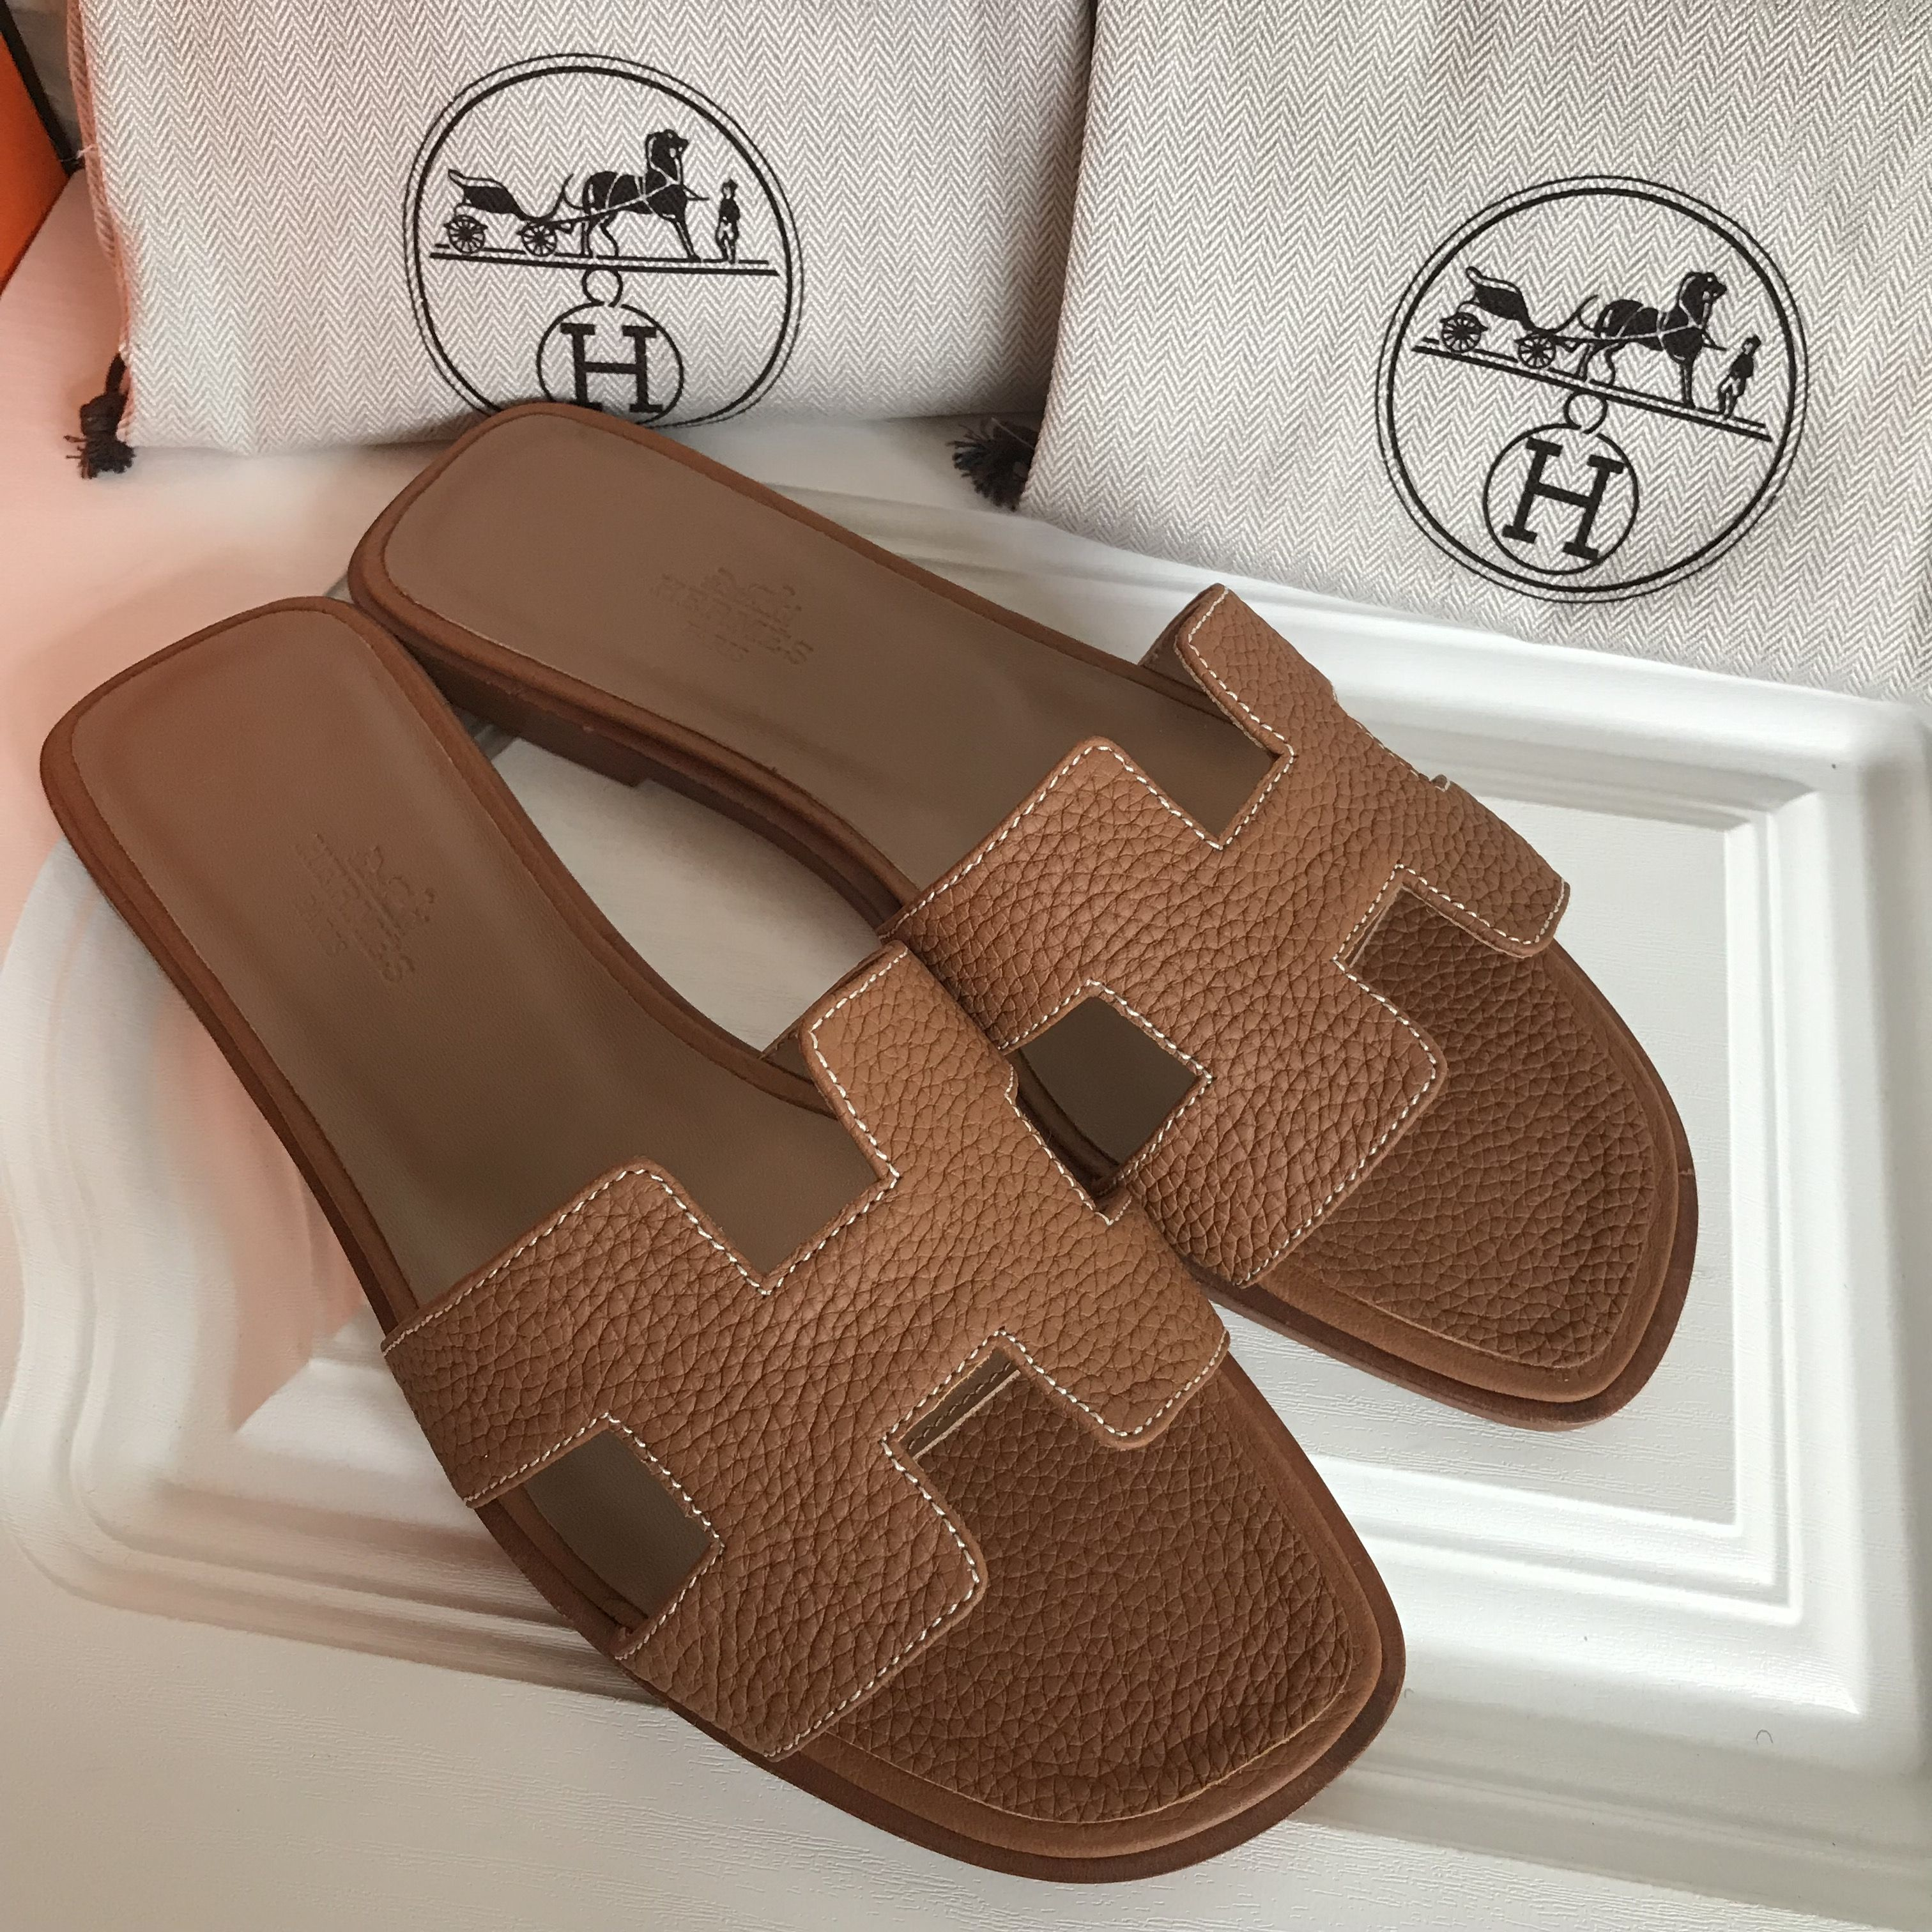 HERMÈS Oran Sandal Brown Calfskin Leather 39